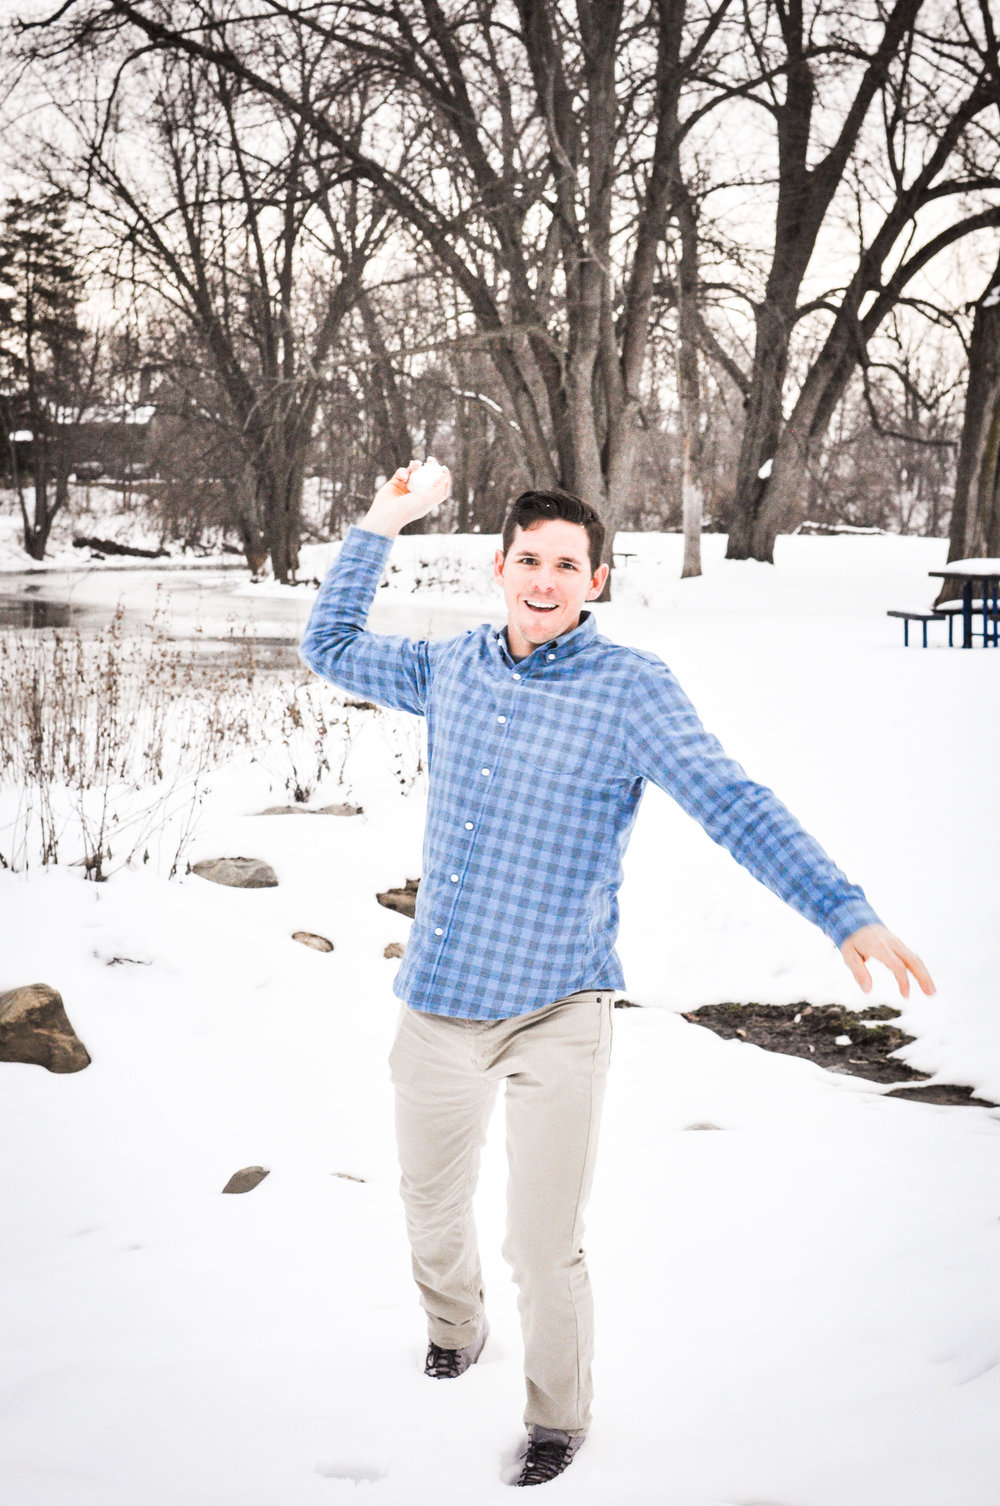 Man in blue shirt throwing snowball